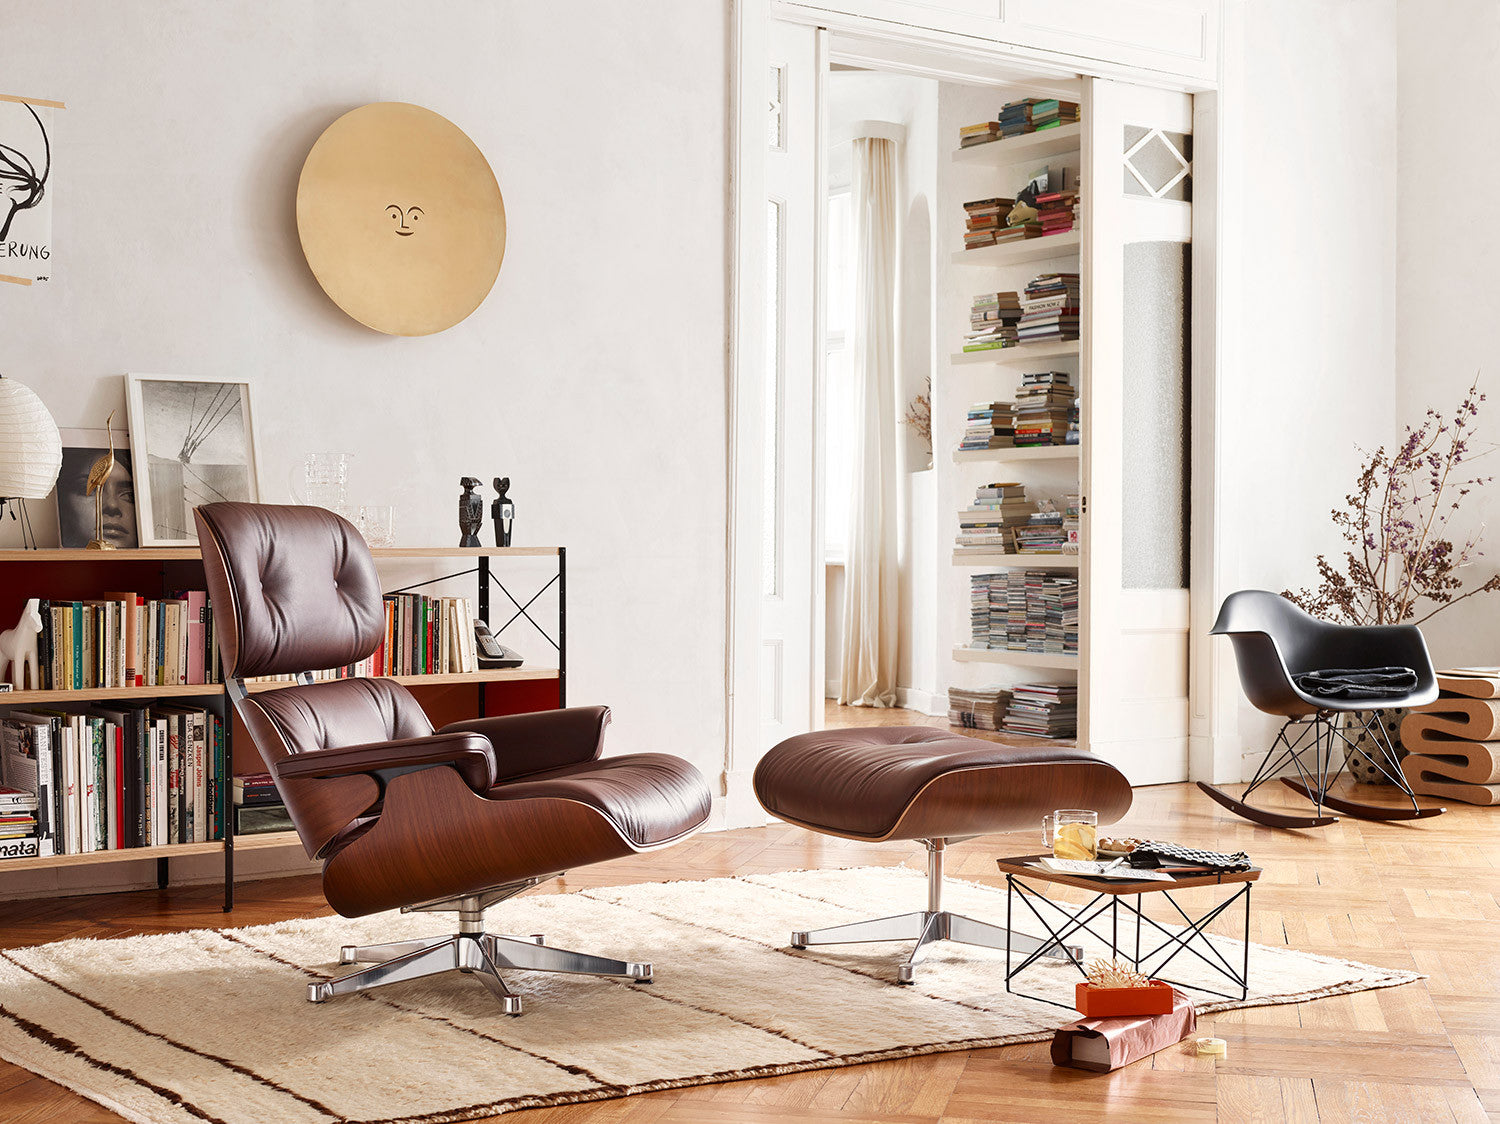 Eames Lounge Chair And Ottoman Santos Palisander And Occasional Table LTR